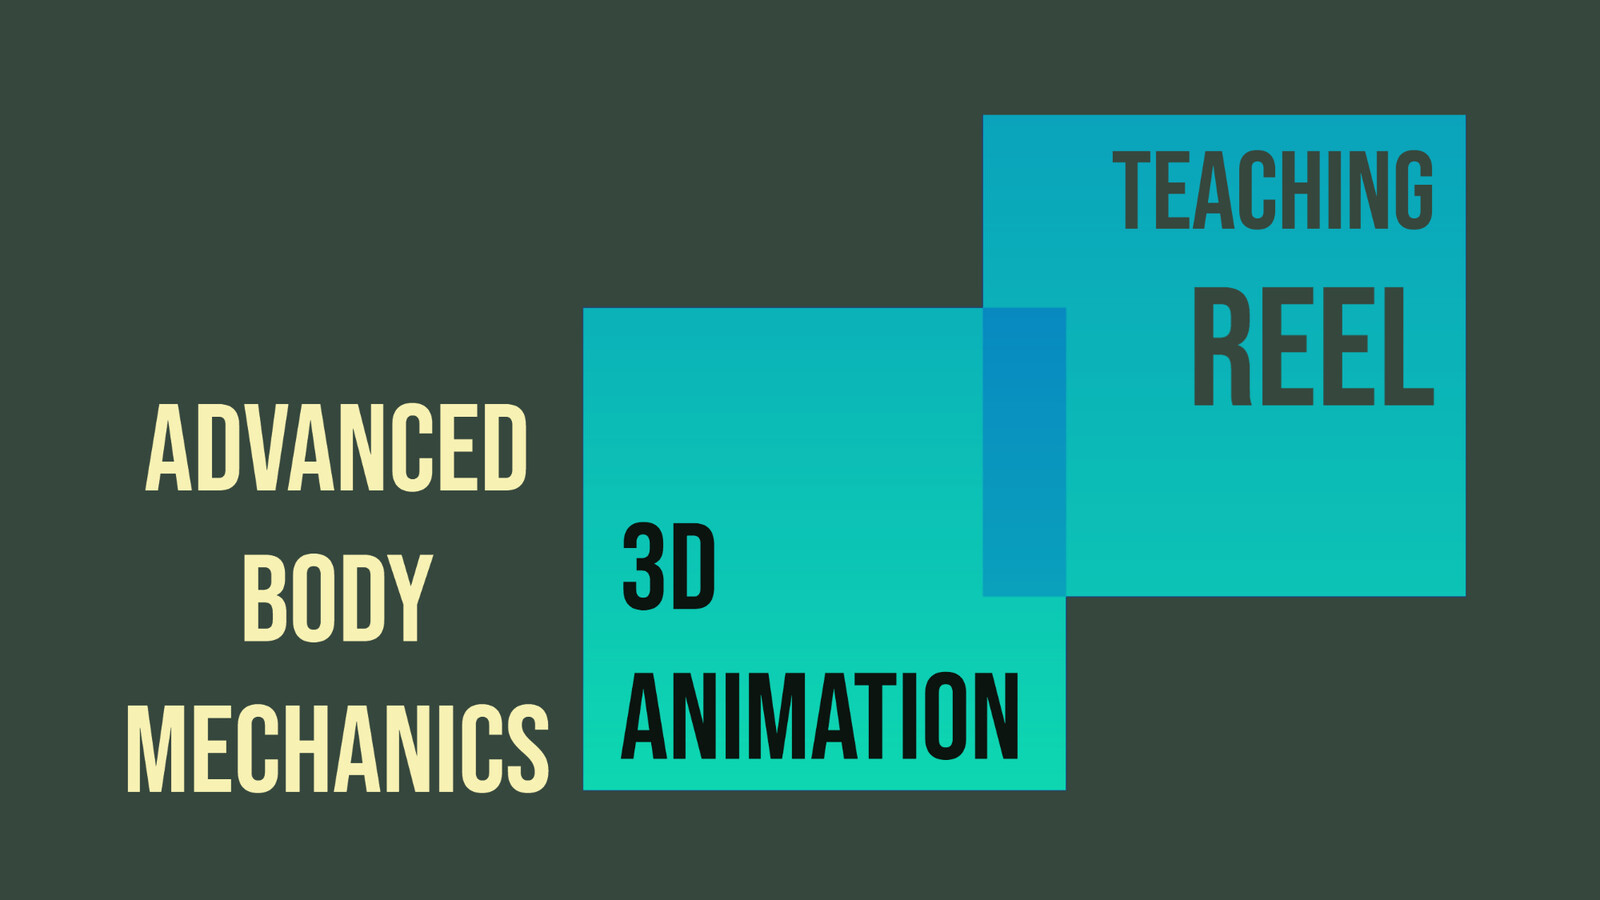 Advanced Body Mechanics. 3D Animation Teaching Reel, with Froggy Hearth Studio from Moldova/UK